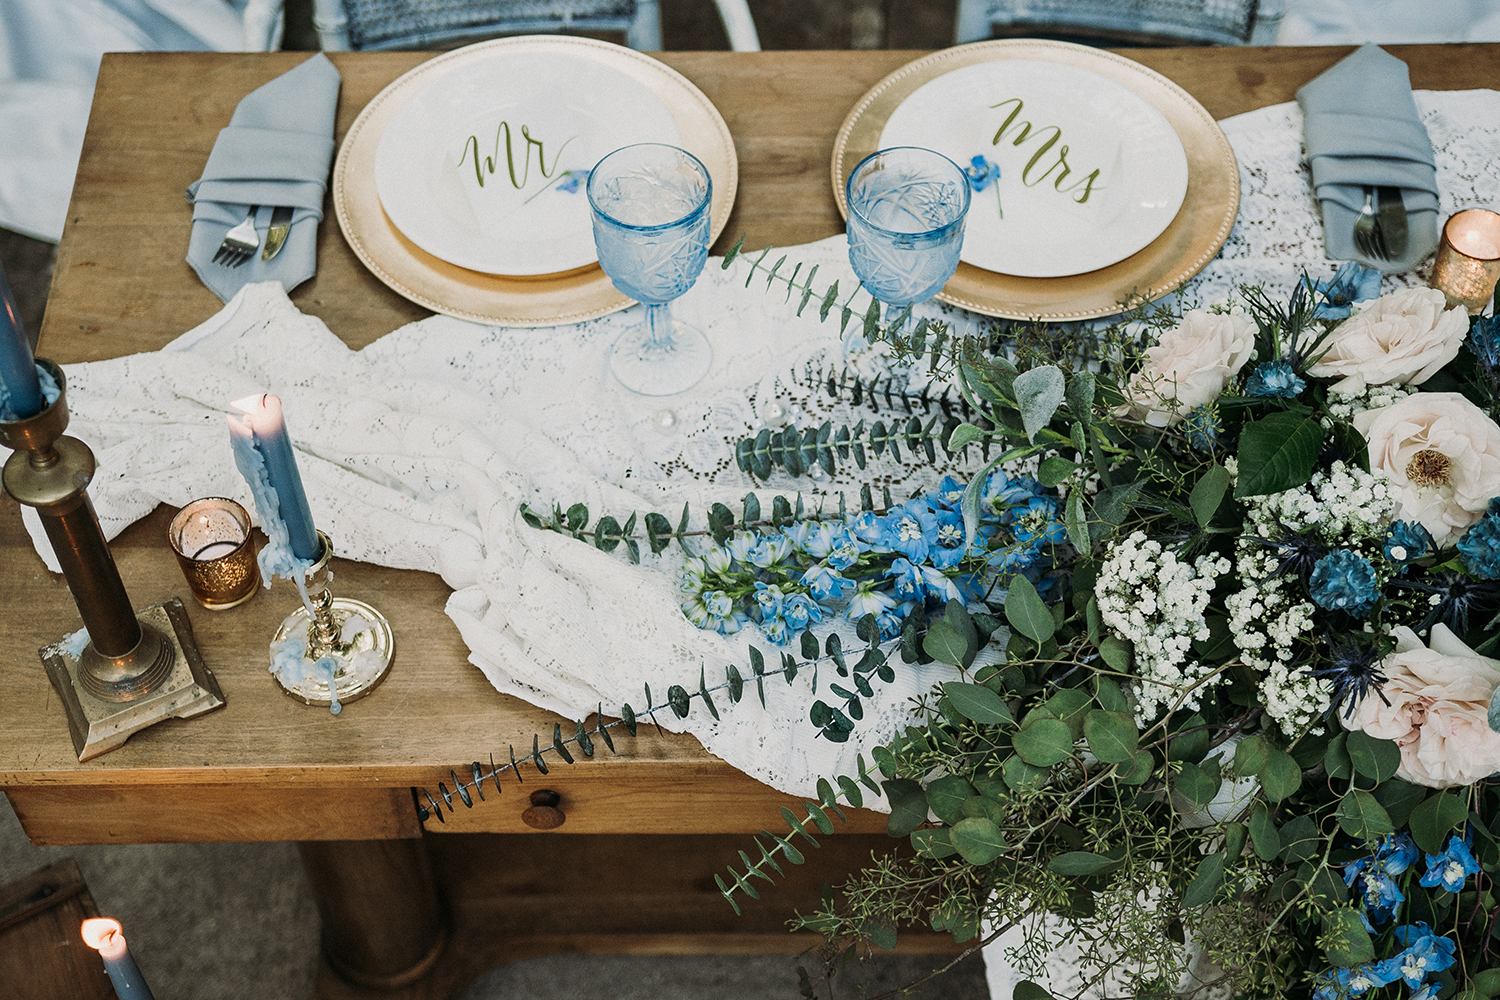 Mr. and Mrs. table placements